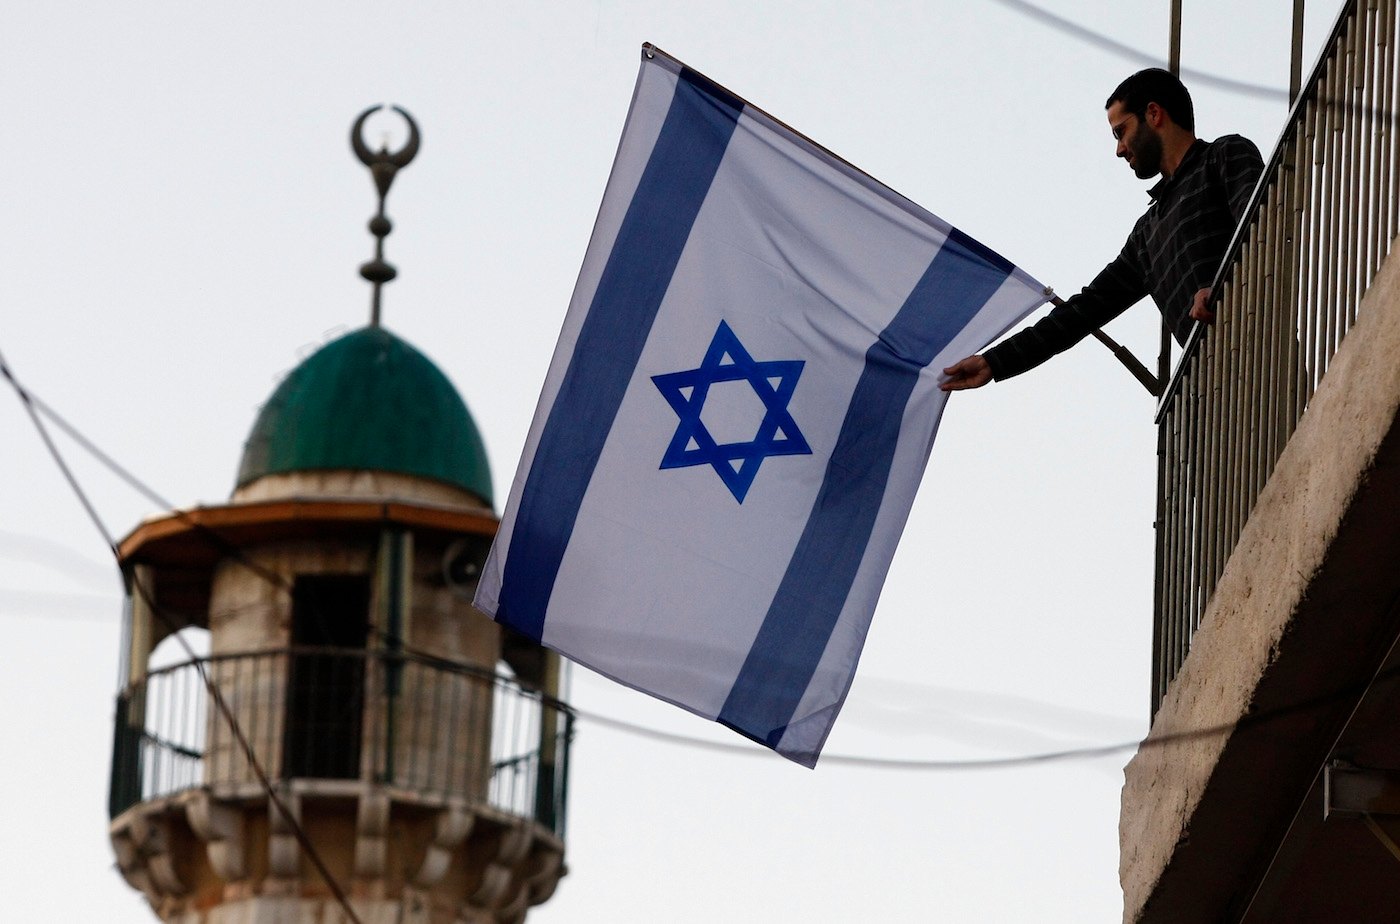 An Israeli Jew raises a flag near the Old City of Jerusalem. Jewish residents in the Old City and predominantly Arab areas nearby have increased 40 percent since 2009. (Abir Sultan/Flash 90)